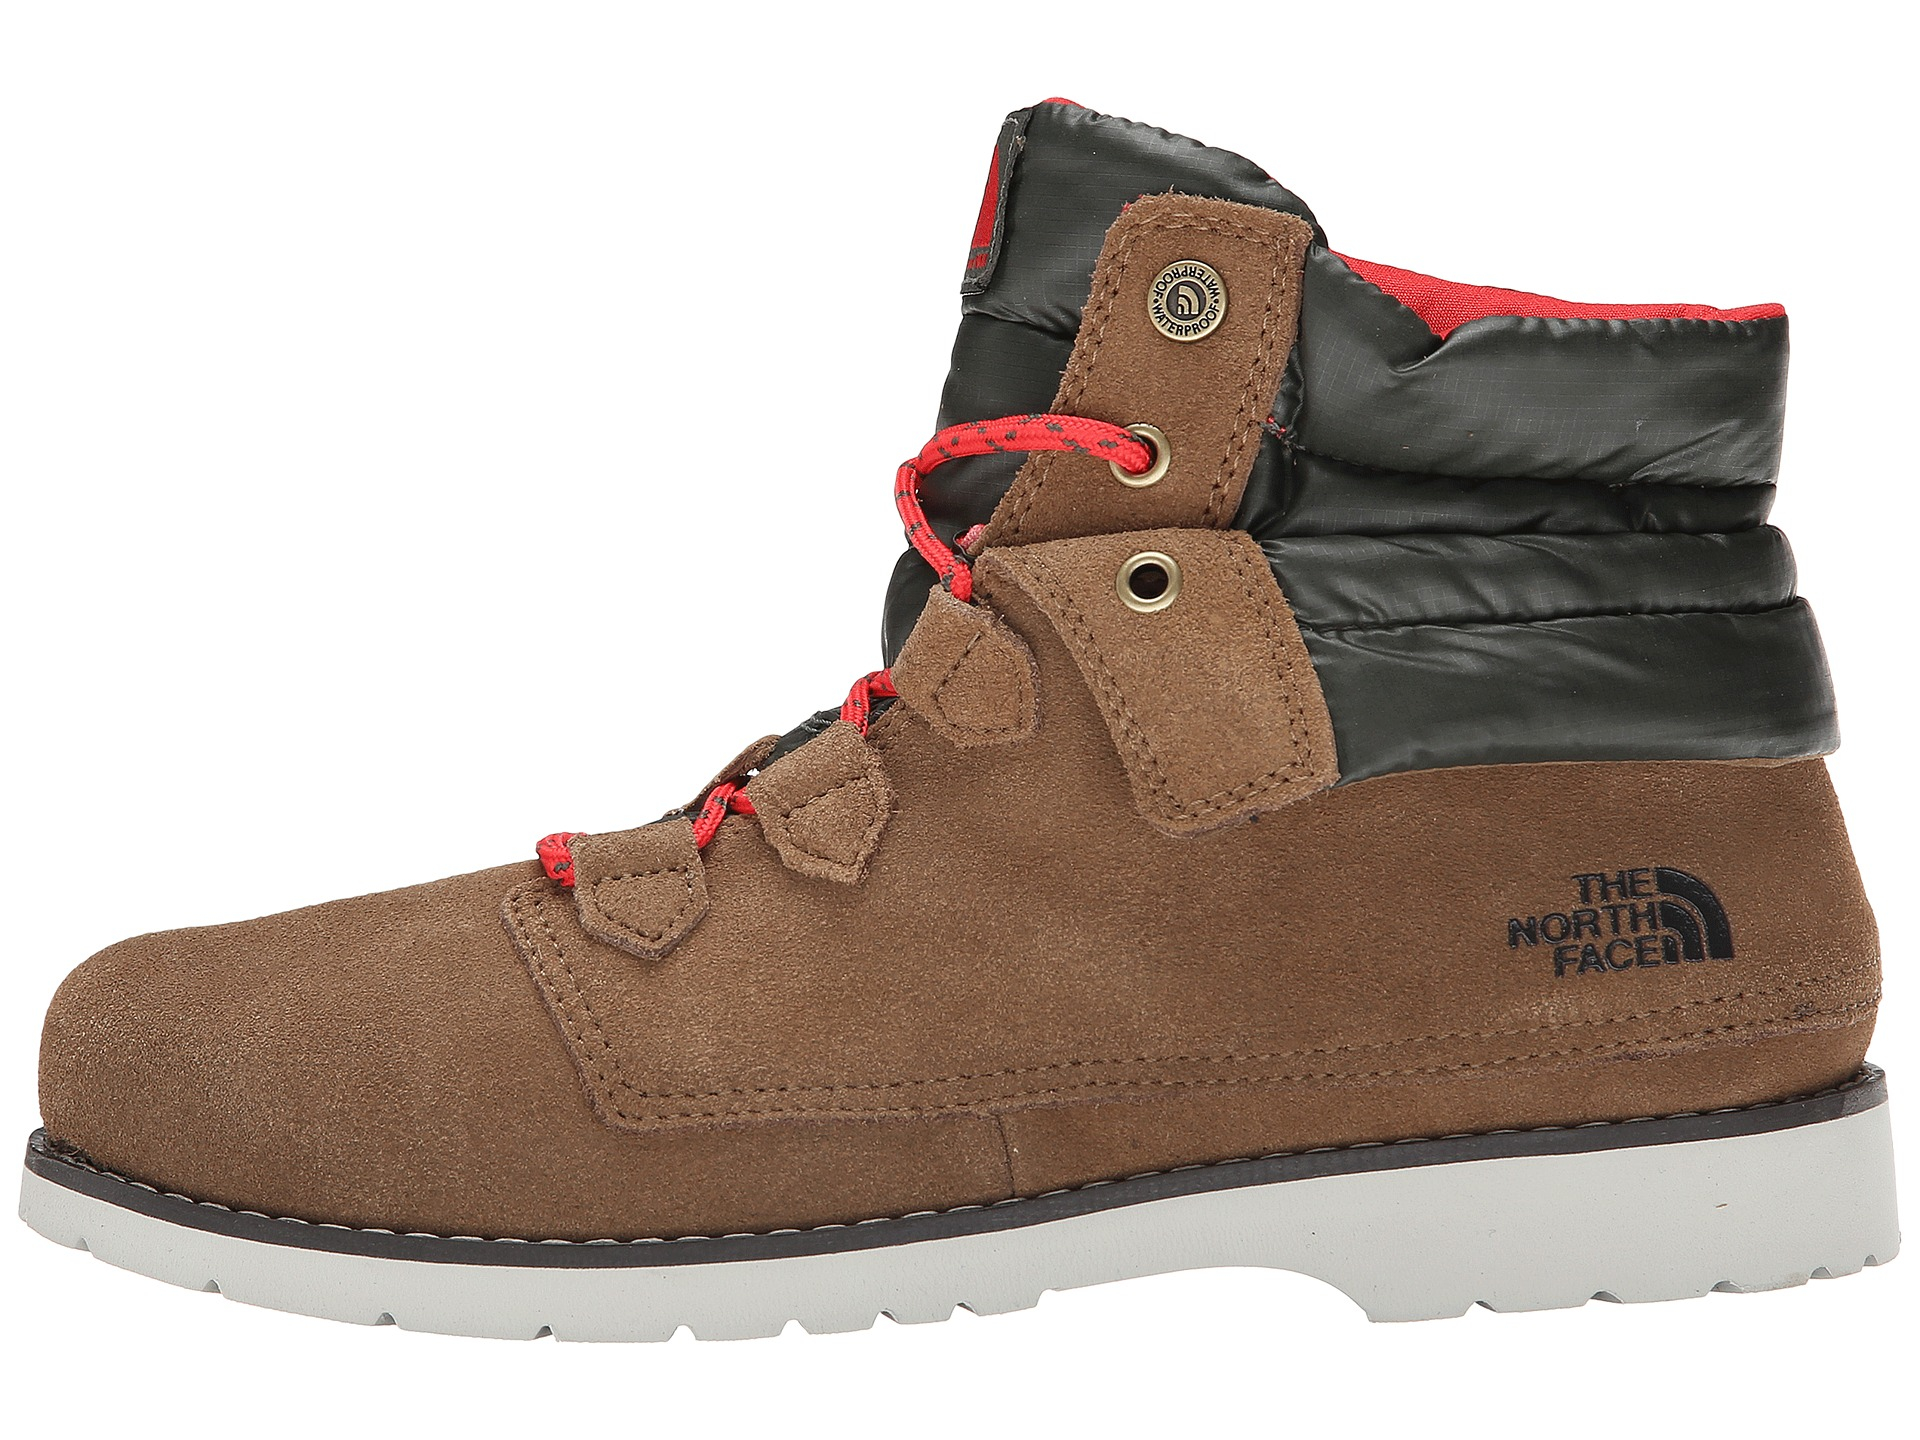 Womens W Ballard Roll-Down Se High-Top Sneakers The North Face ggkZsL